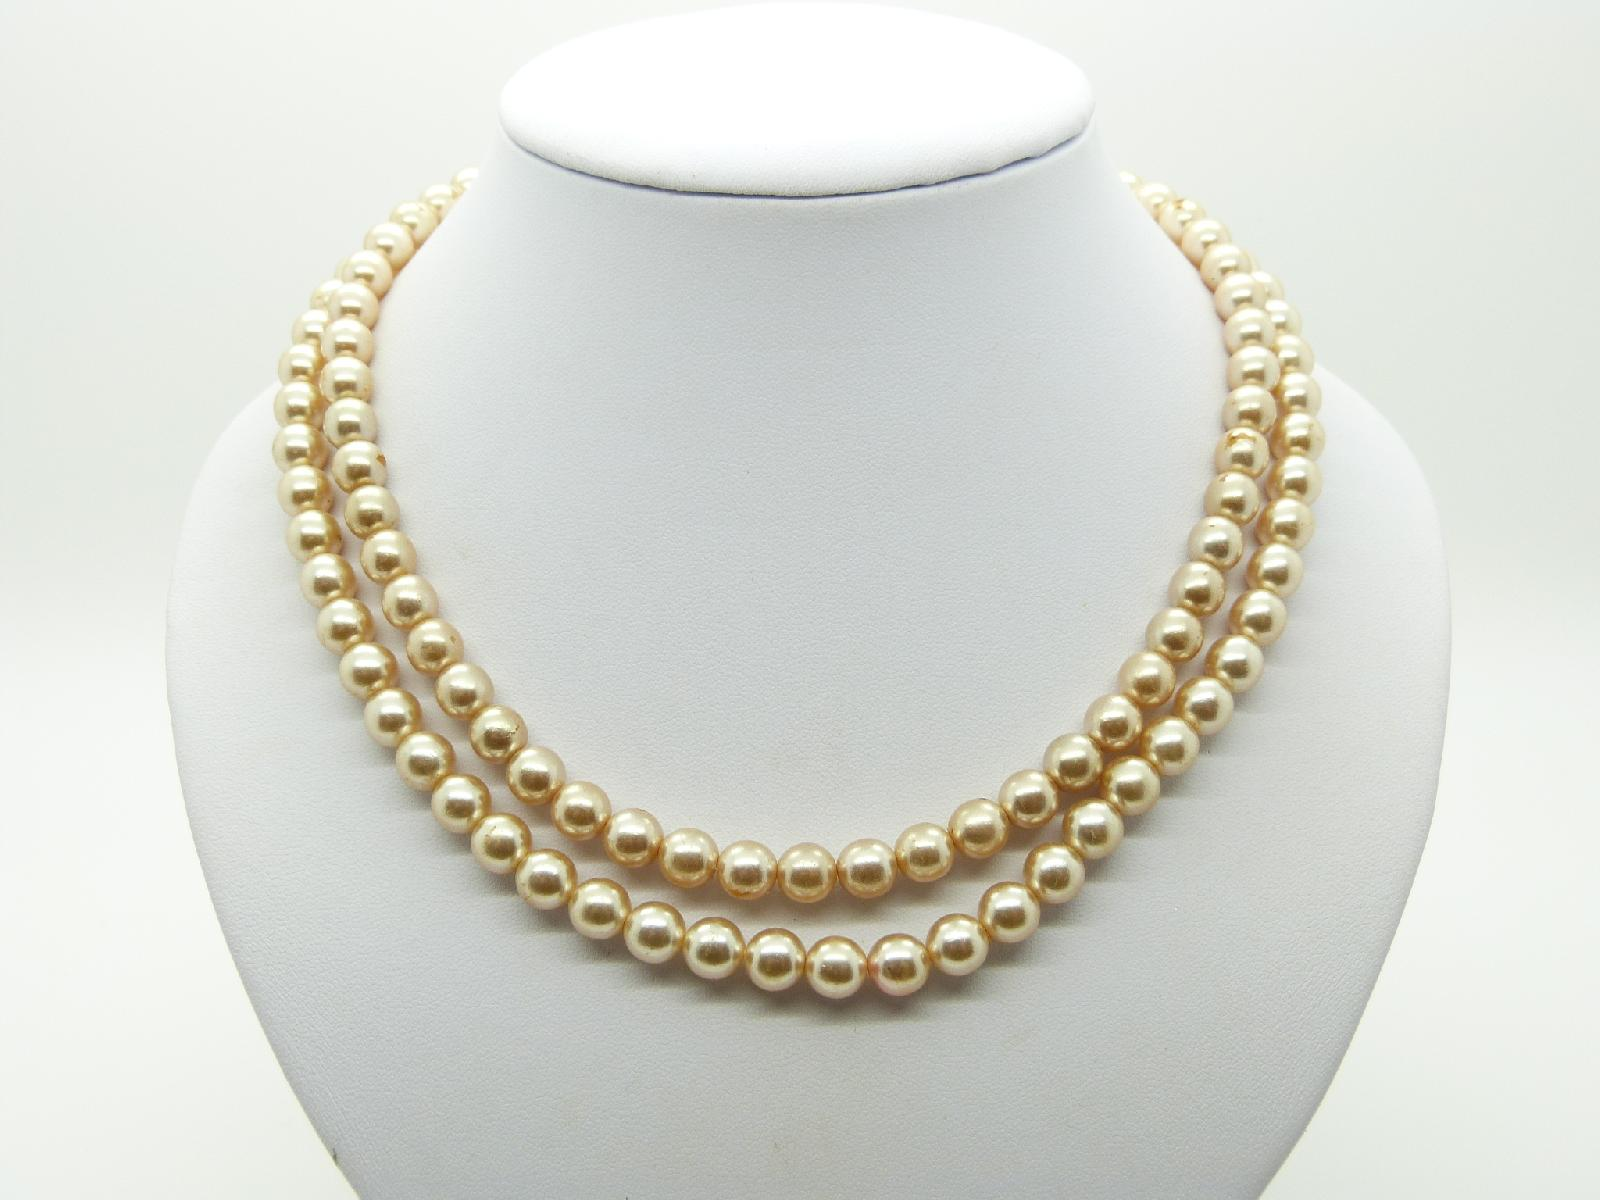 Vintage 50s Classy Two Row Glass Faux Pearl Bead Necklace 50cms